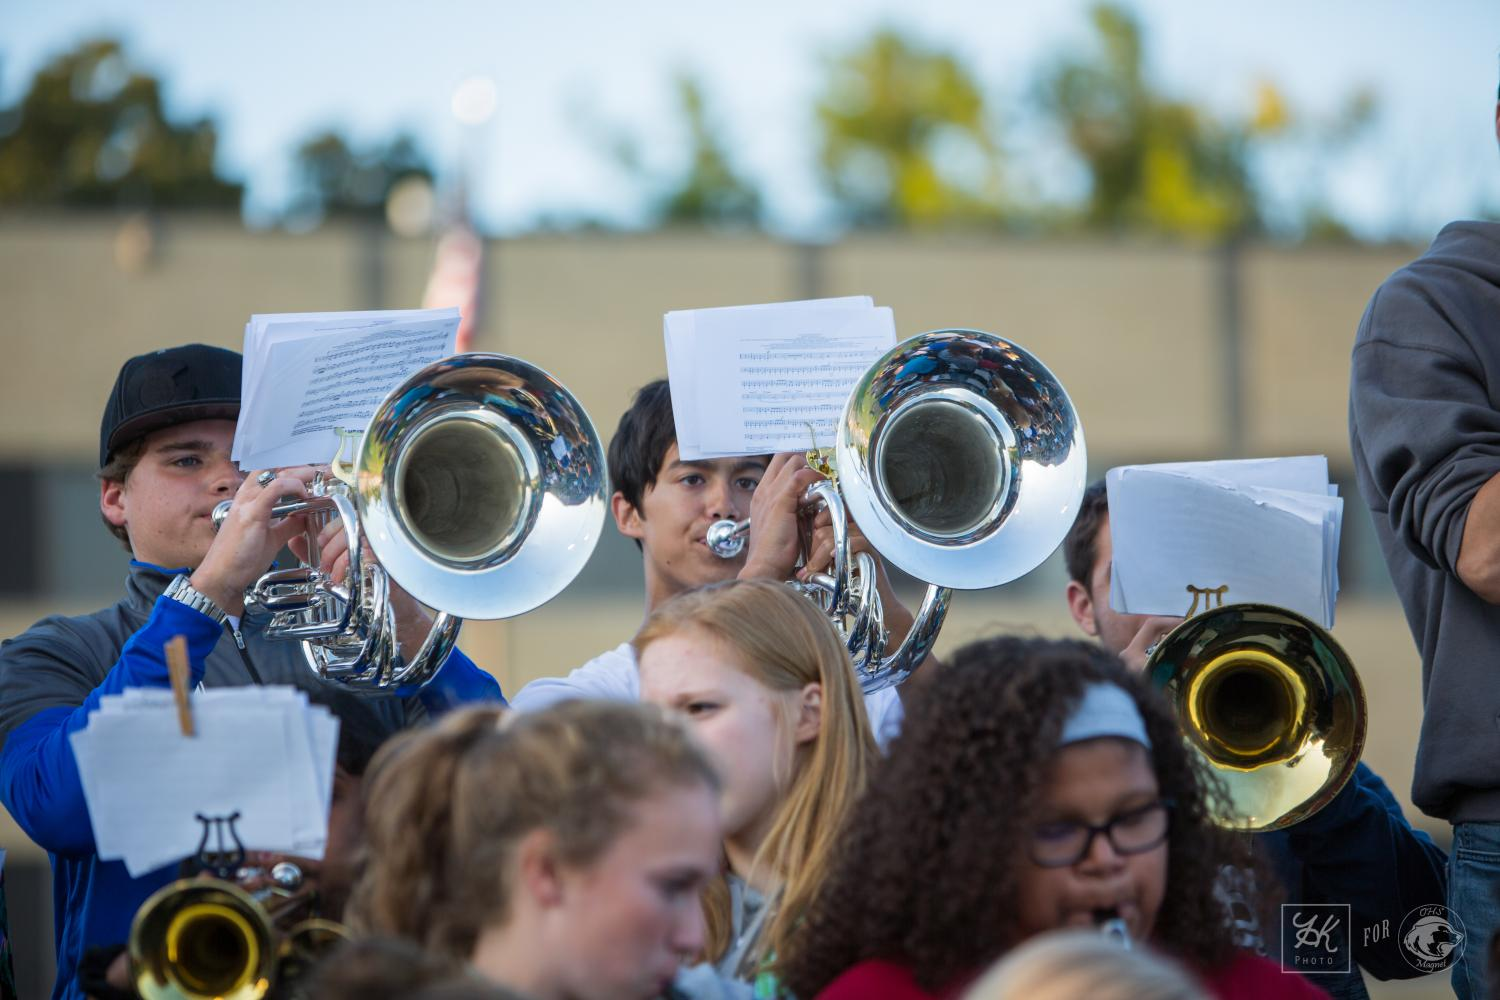 OHS Pep Band will be performing at many OHS winter sporting events